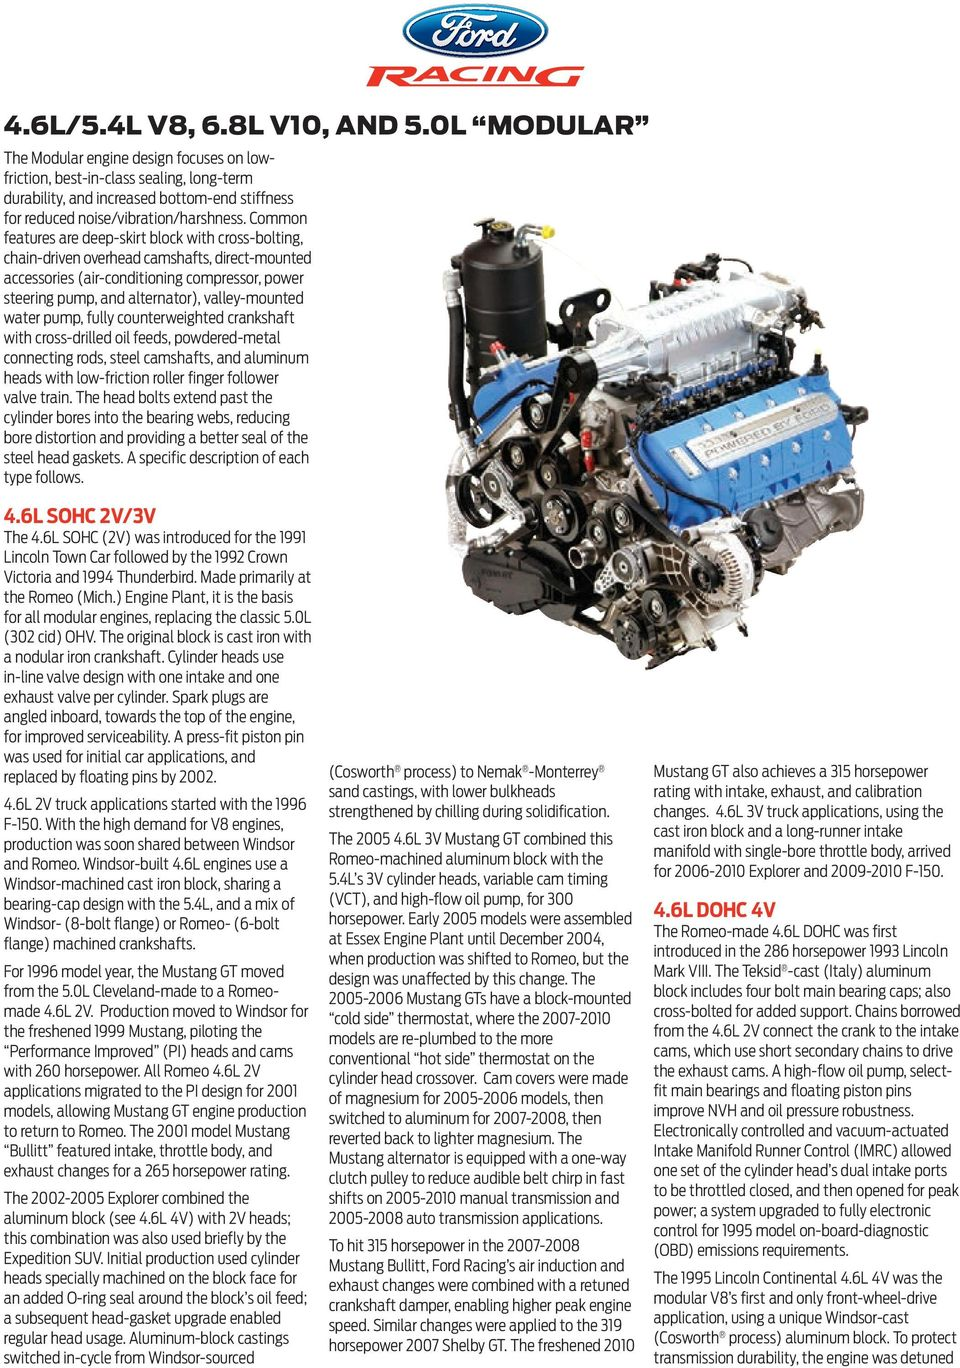 Four Cylinder Engine Section Pdf Parts Diagram Ford 5 4l V8 Common Features Are Deep Skirt Block With Cross Bolting Chain Driven Overhead 6 46l 54l